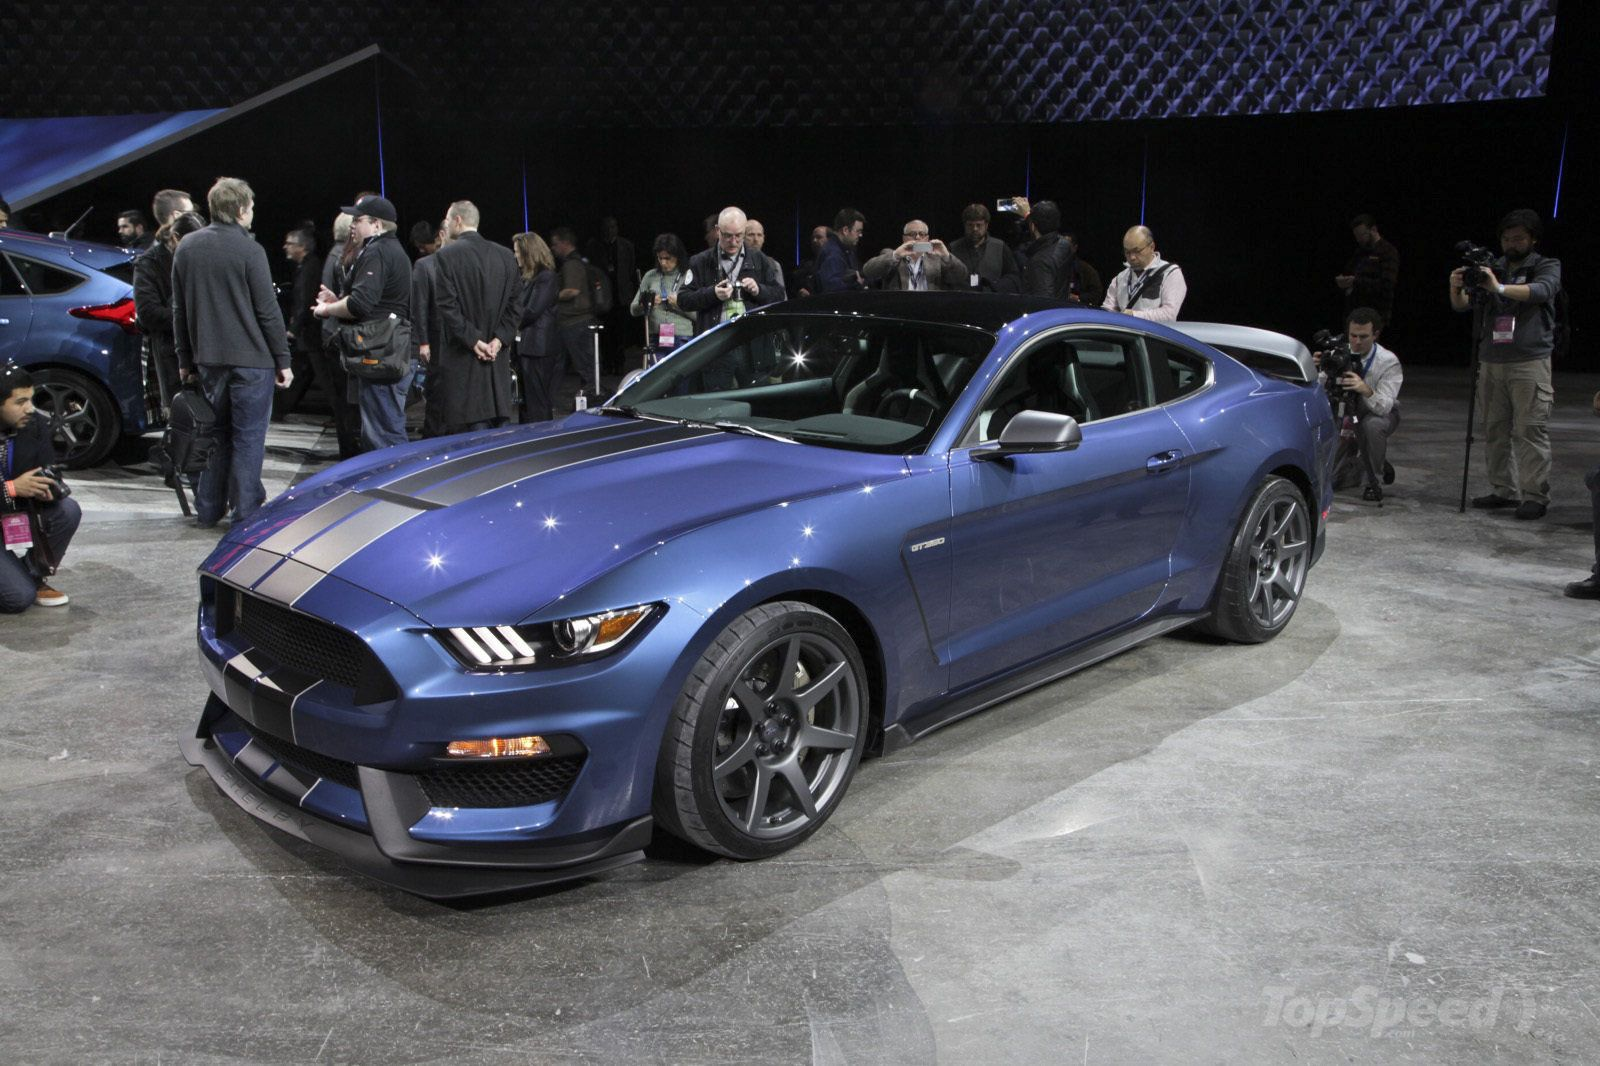 2016 Ford Mustang Boss 302s Price And Specs Http Www Autocarkr